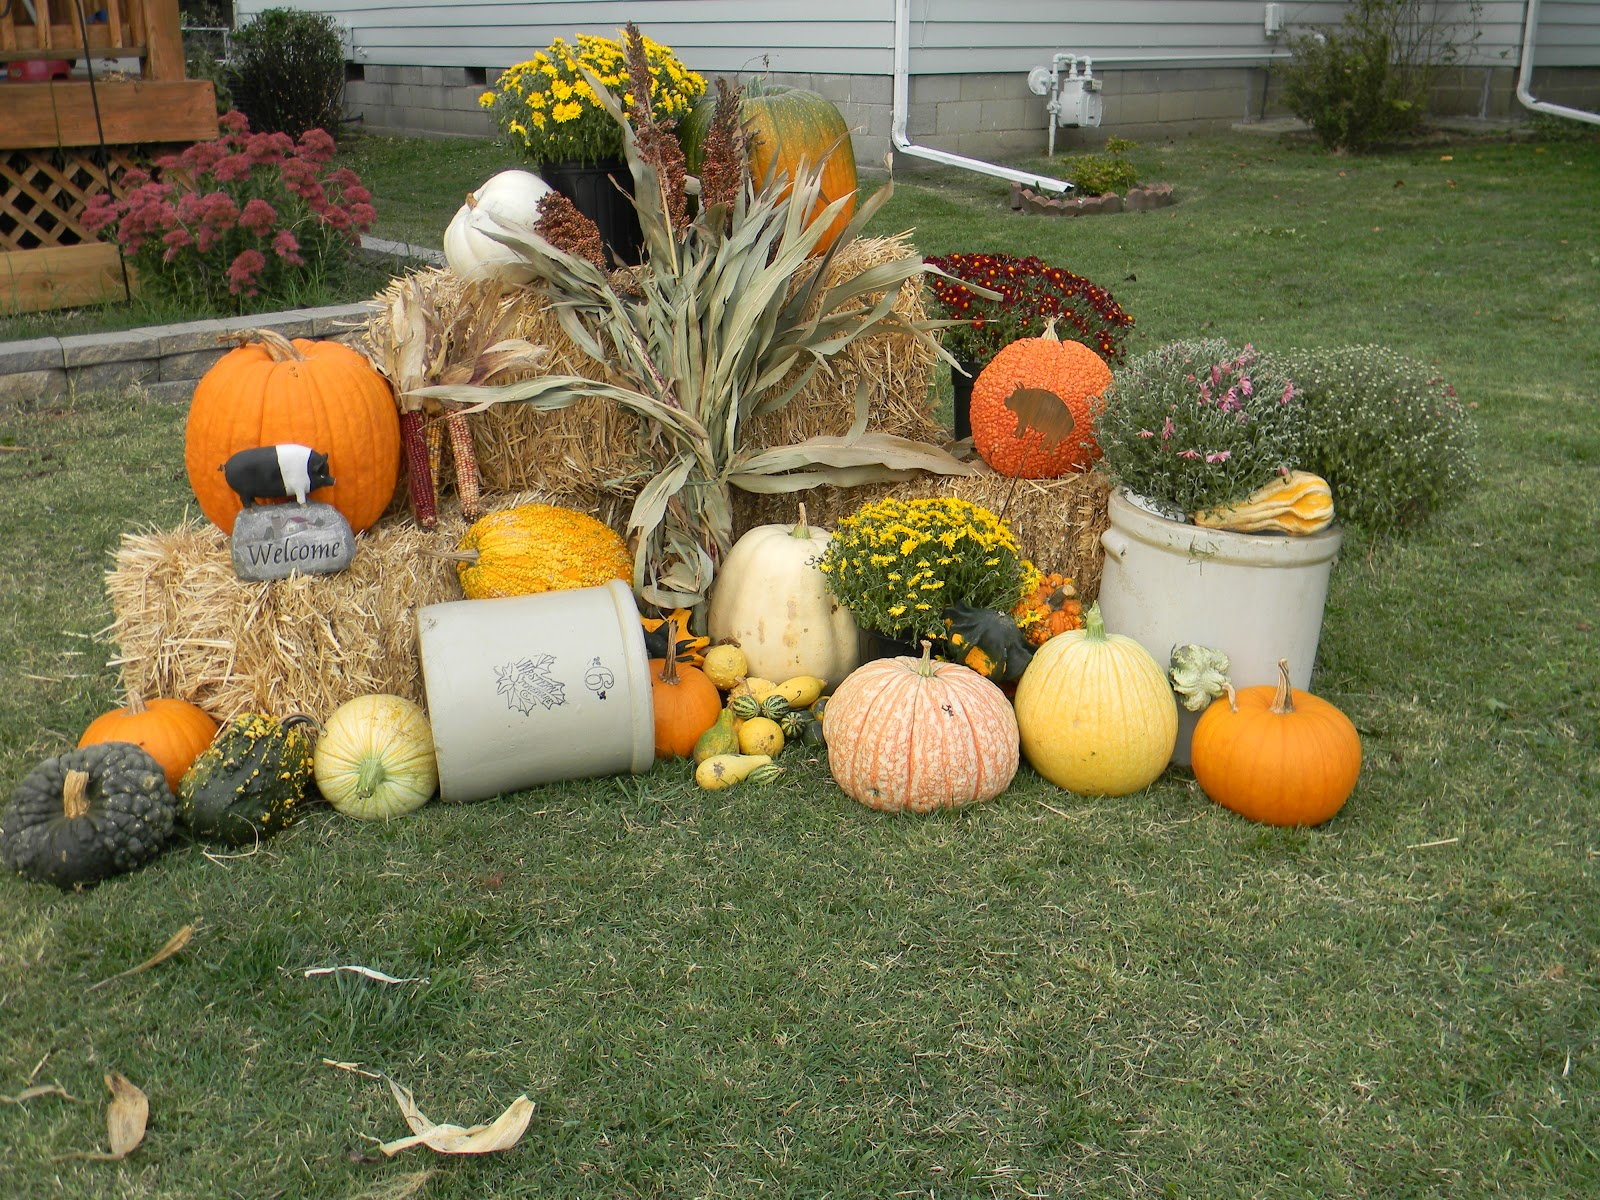 fall yard decor and stone crocks - Yard Decor